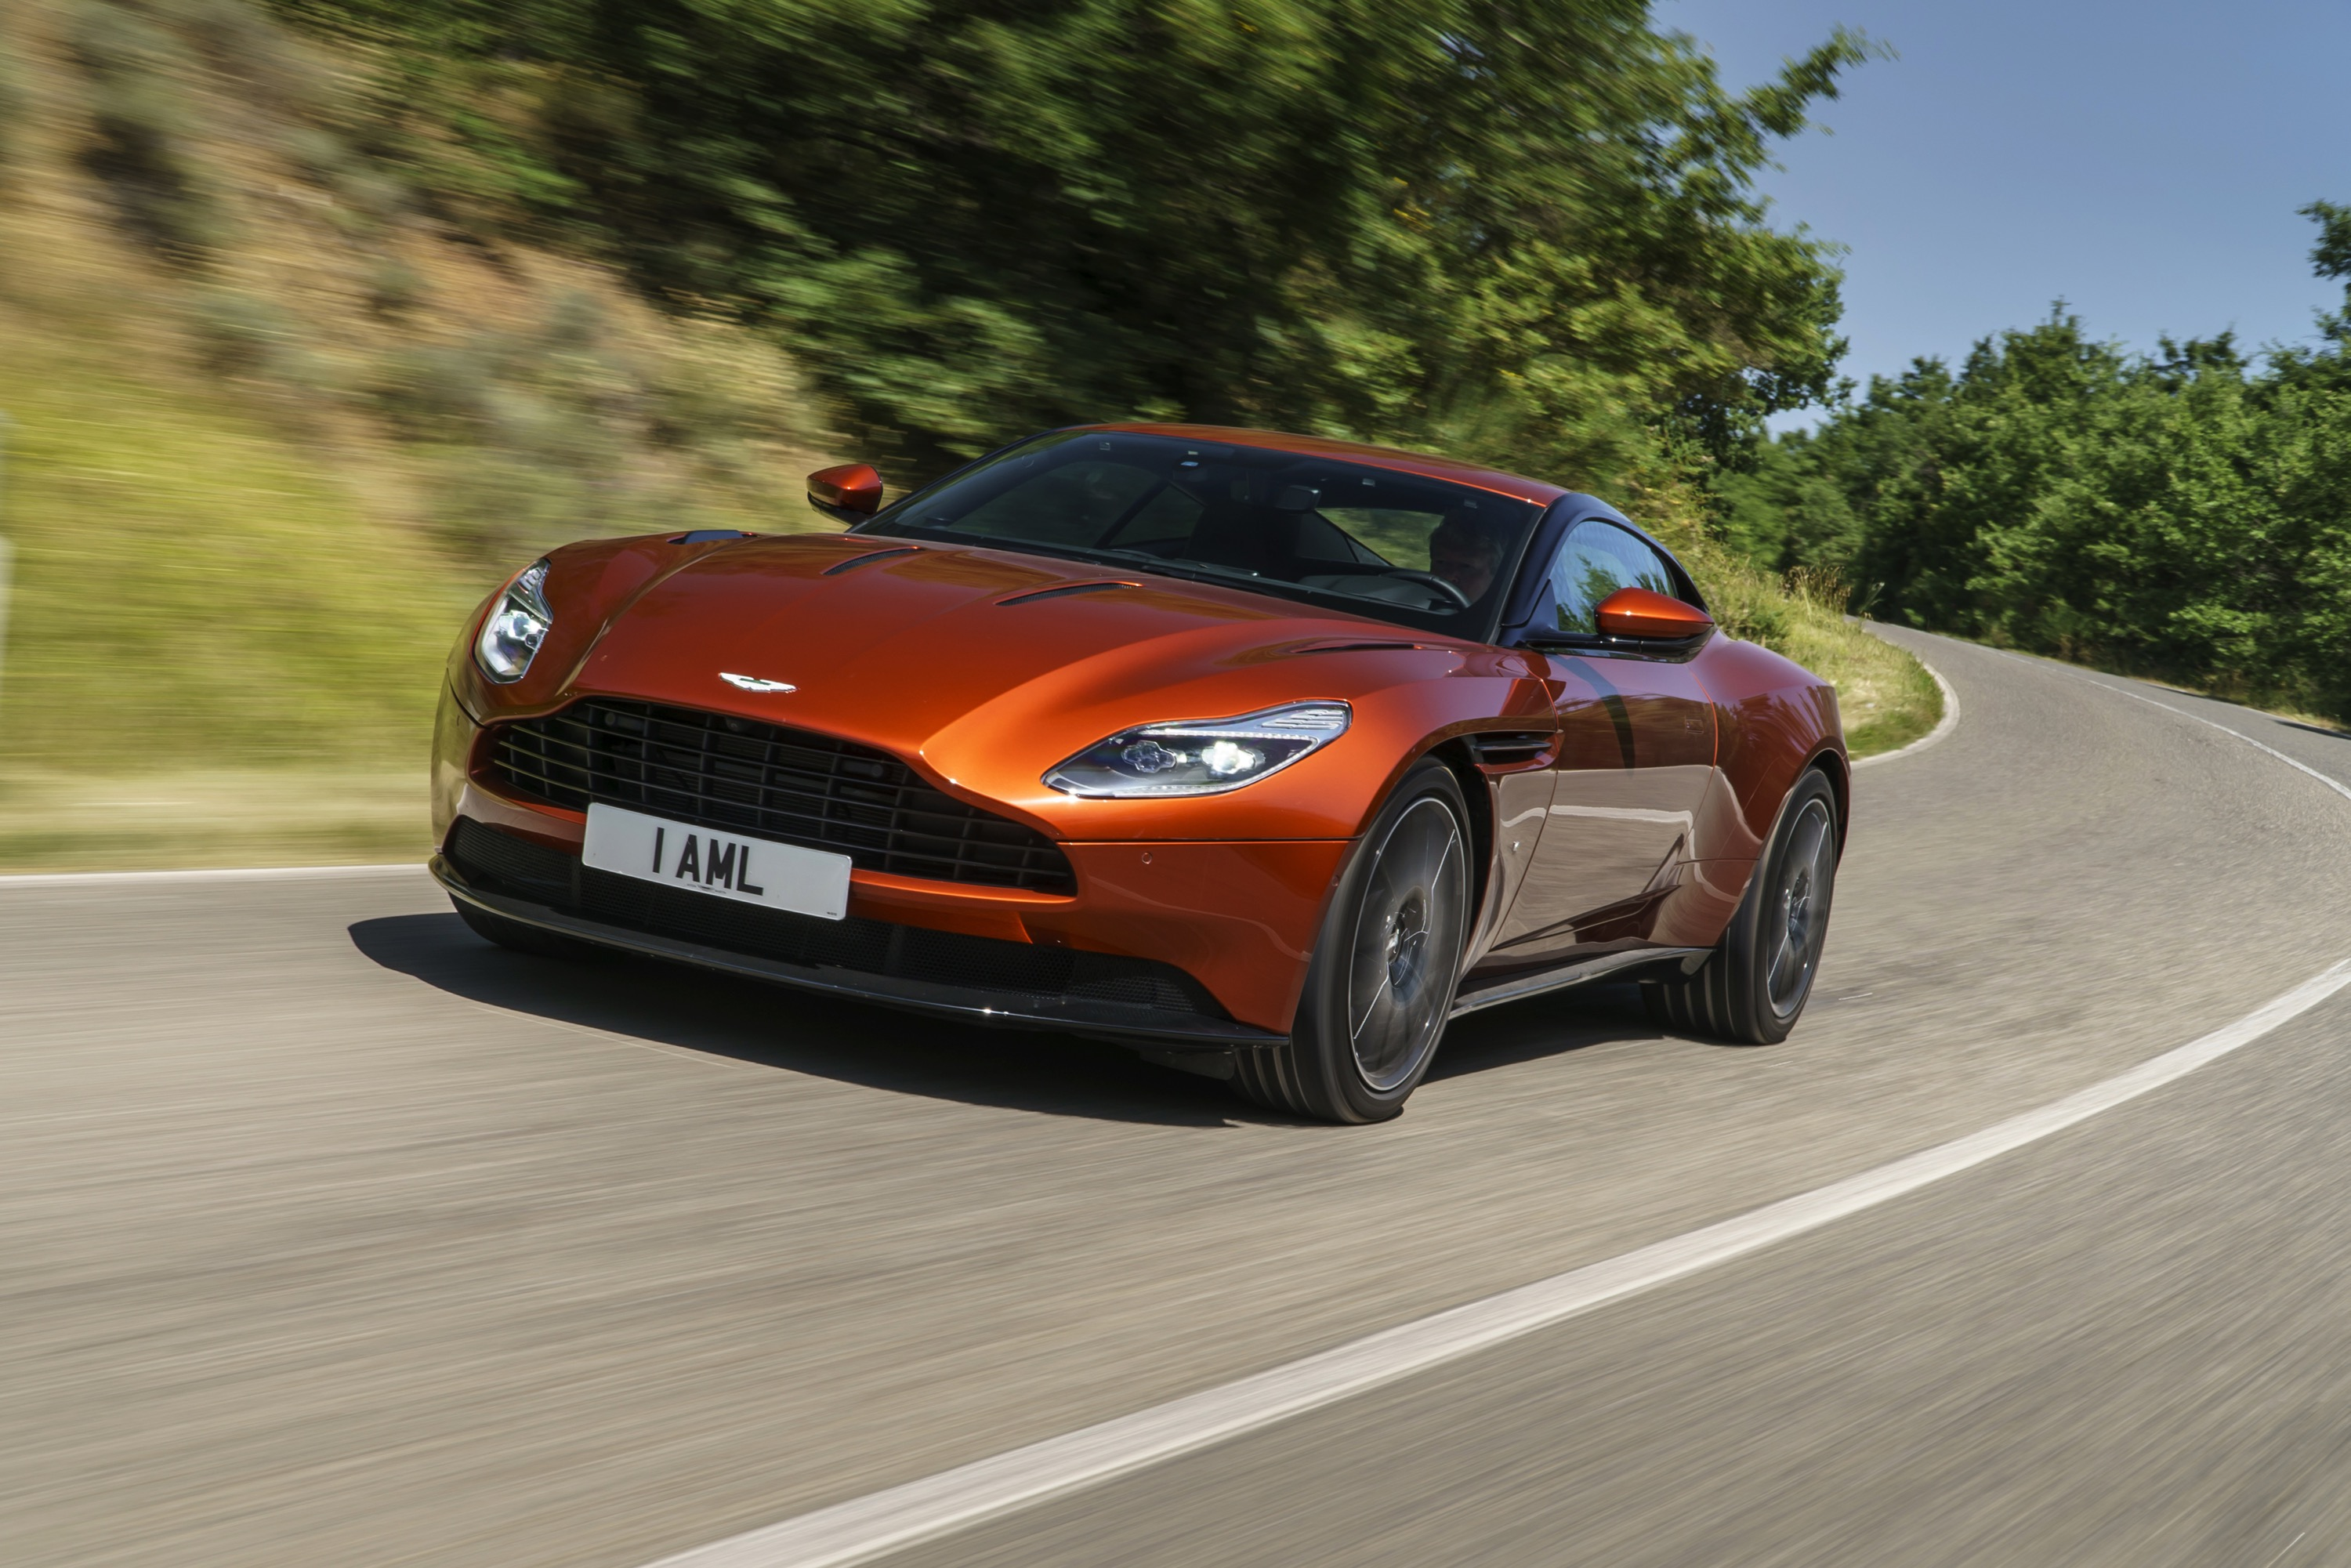 Aston Martin DB11 Review - Photos